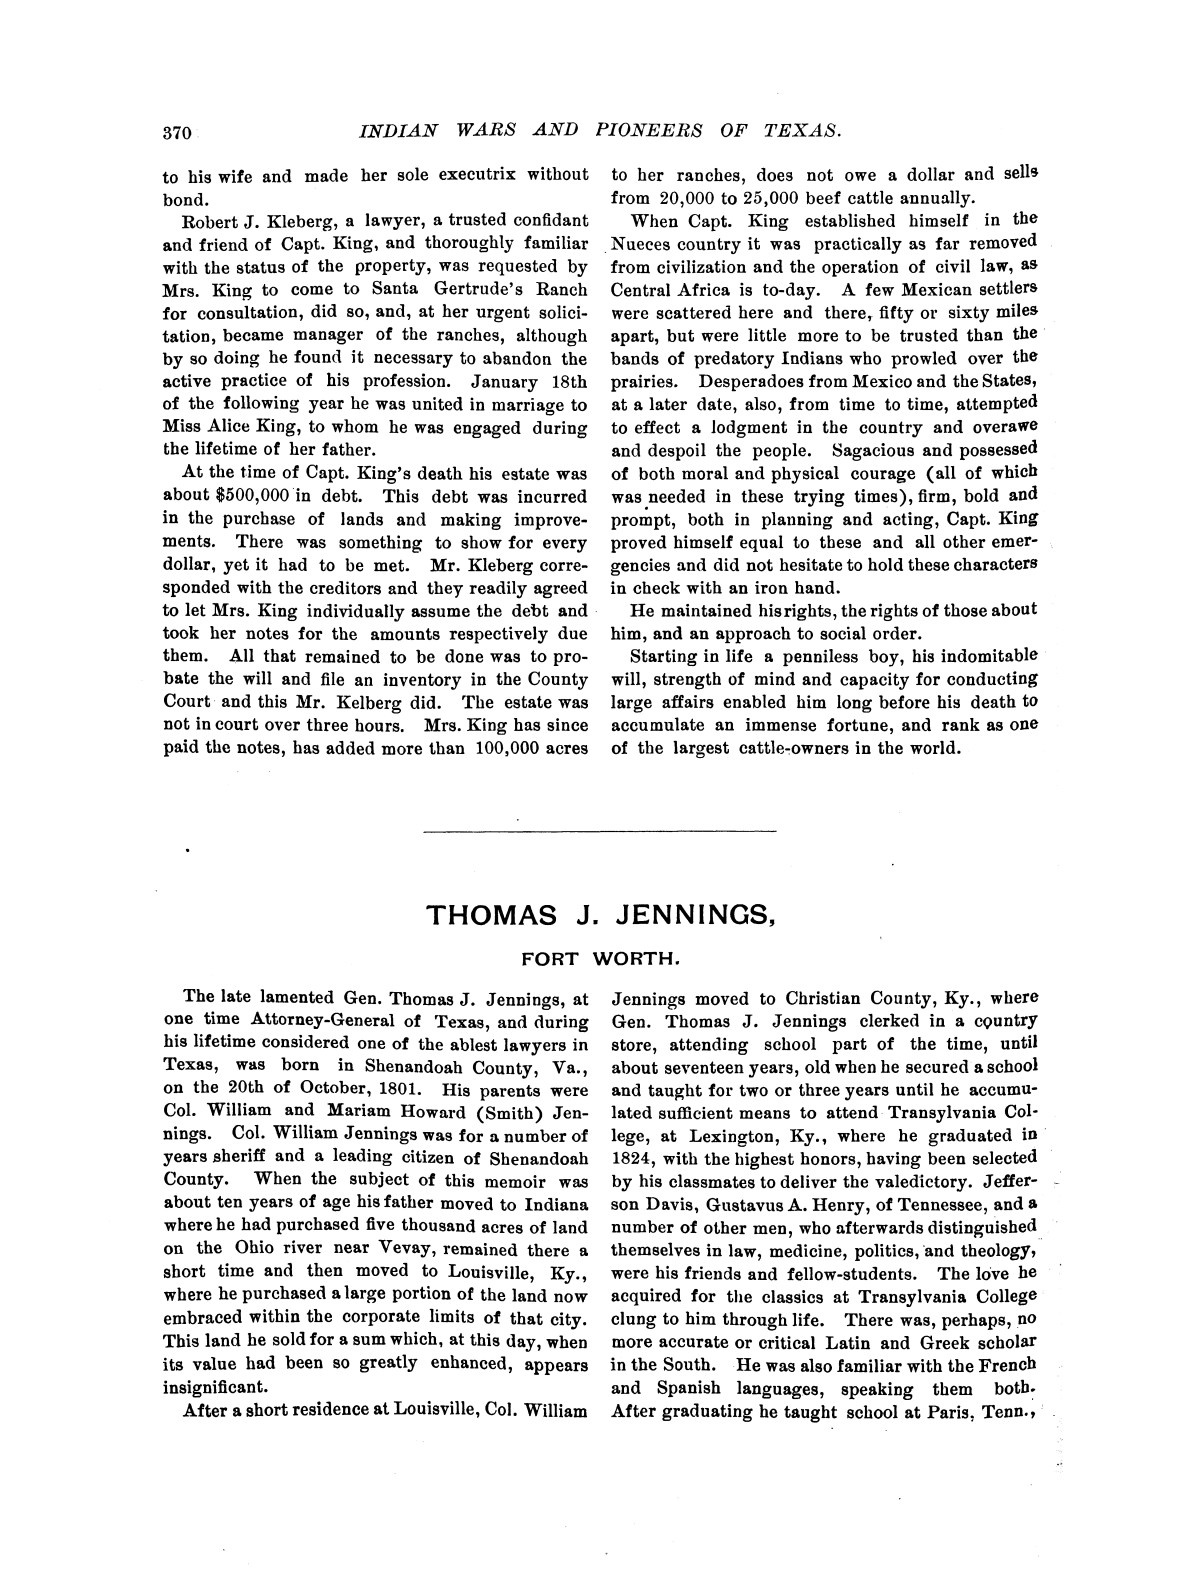 Indian wars and pioneers of Texas / by John Henry Brown.                                                                                                      [Sequence #]: 446 of 894